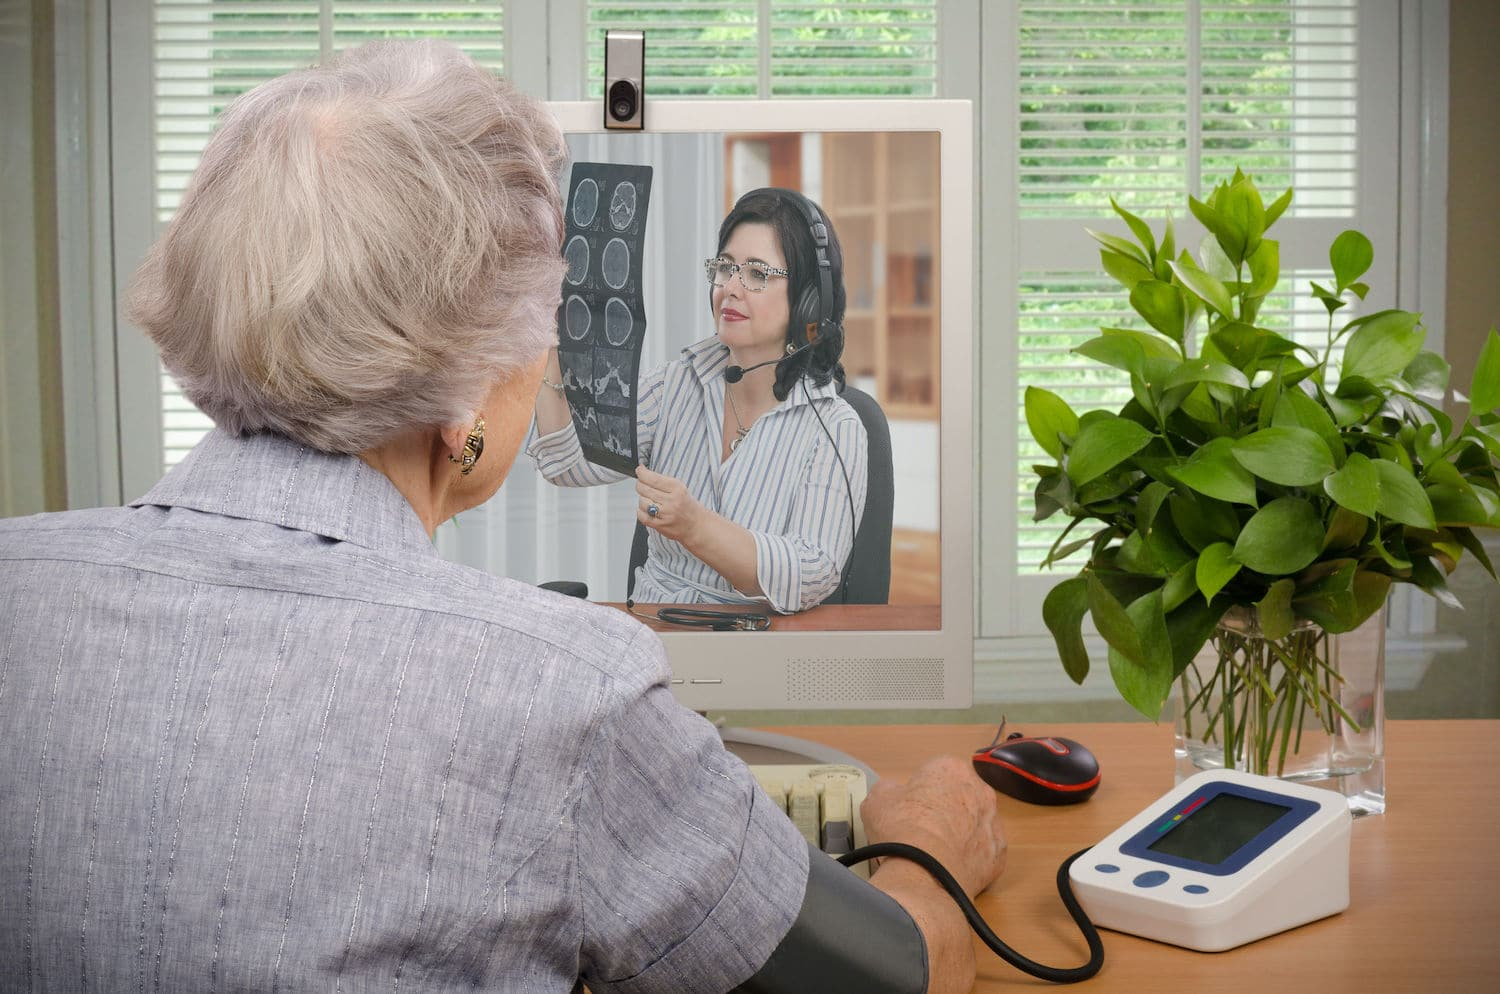 Telehealth kiosk - retired woman communicating with doctor through telehealth kiosk